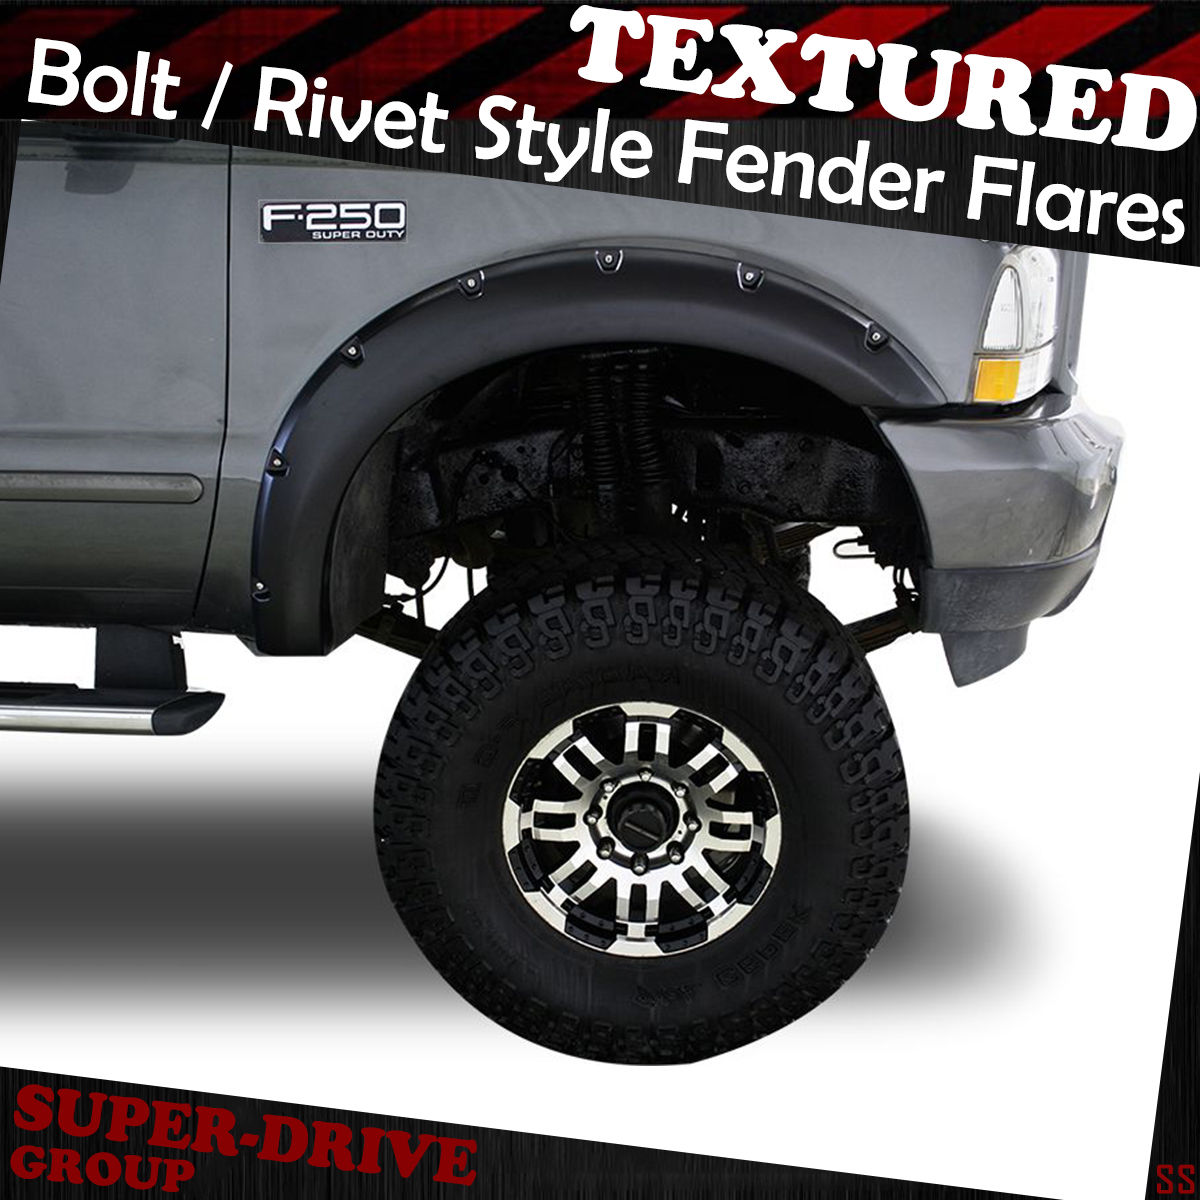 hight resolution of pocket riveted black textured fender flares for 99 07 ford f 250 f350 super duty